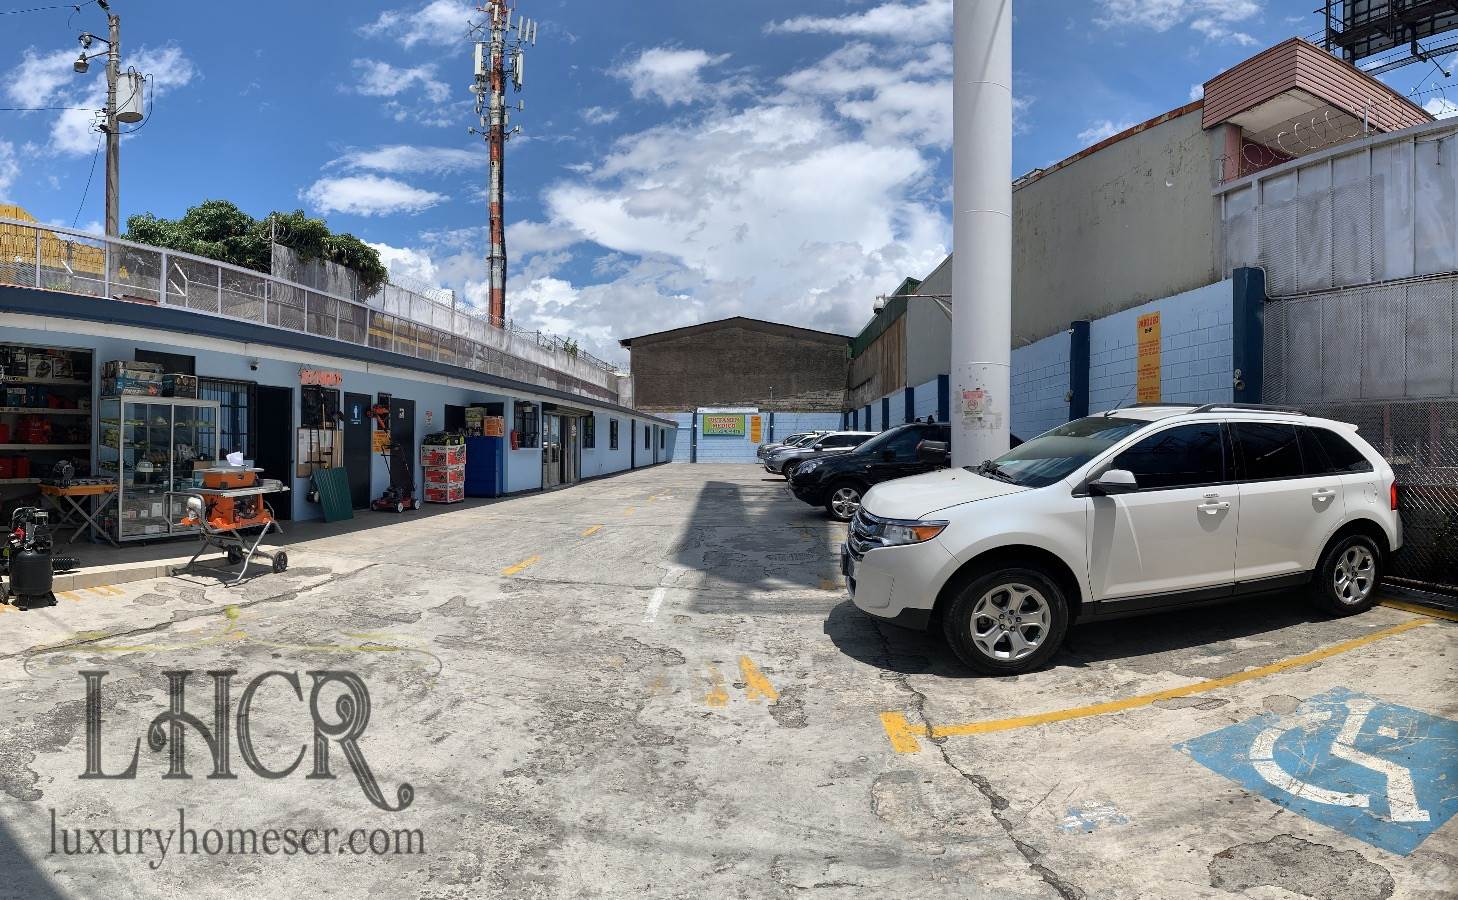 Comercial para alugar em Strategic Parking Lot, Uruca, San José ,10101  , Costa Rica